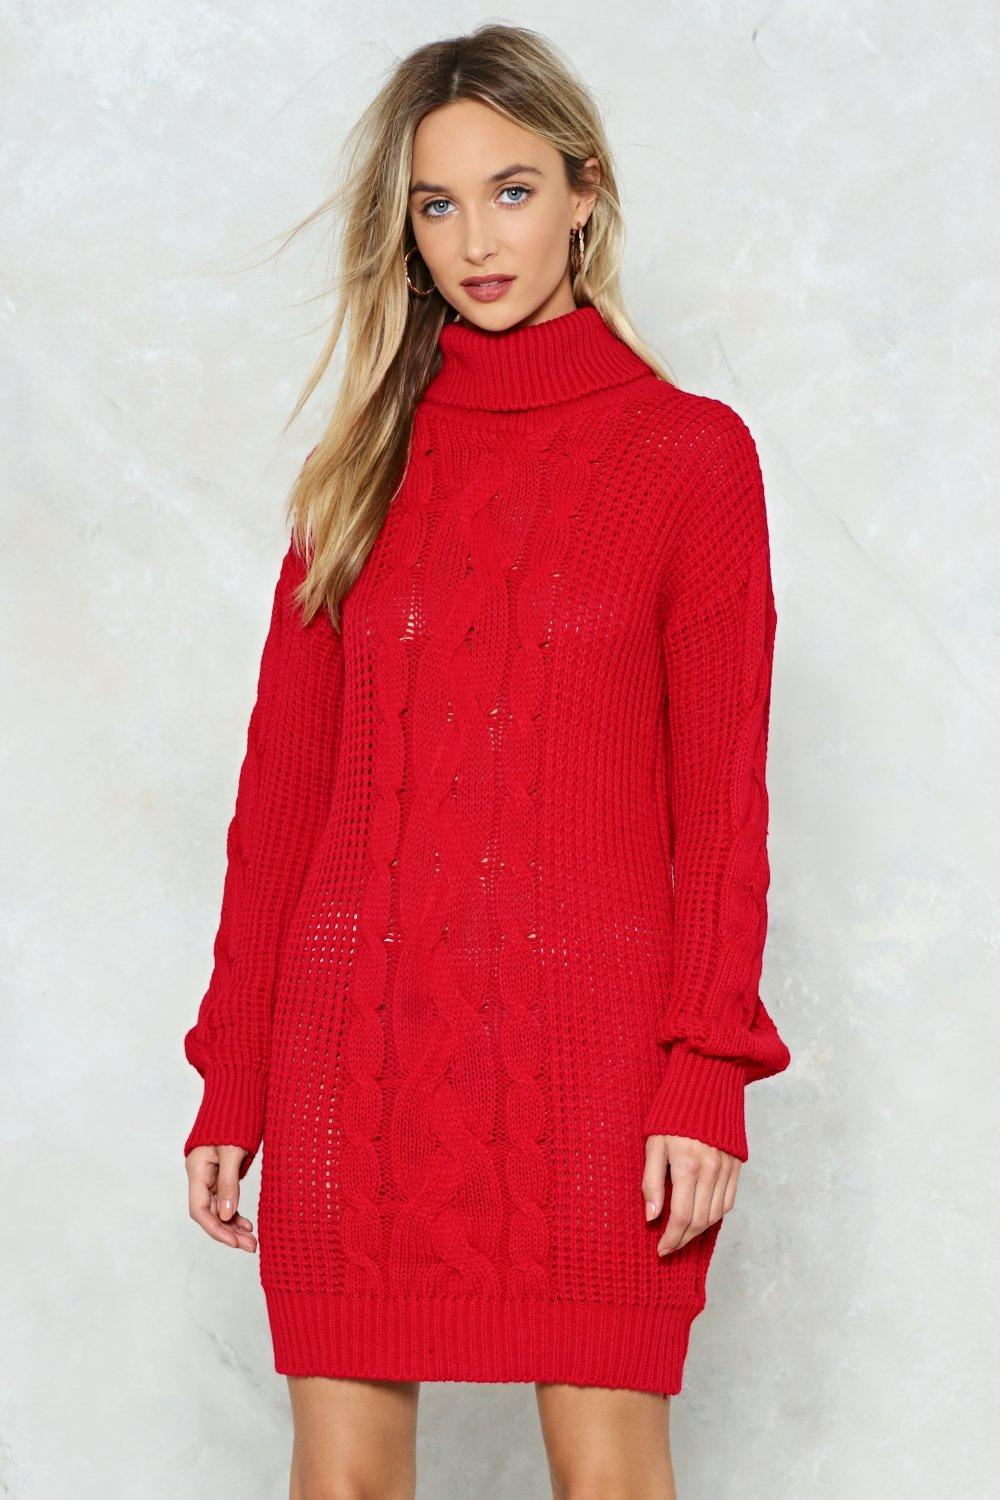 7a47ea3bcc Akira Turtleneck Open Back Ribbed Knit Sweater Dress In Black Red ...